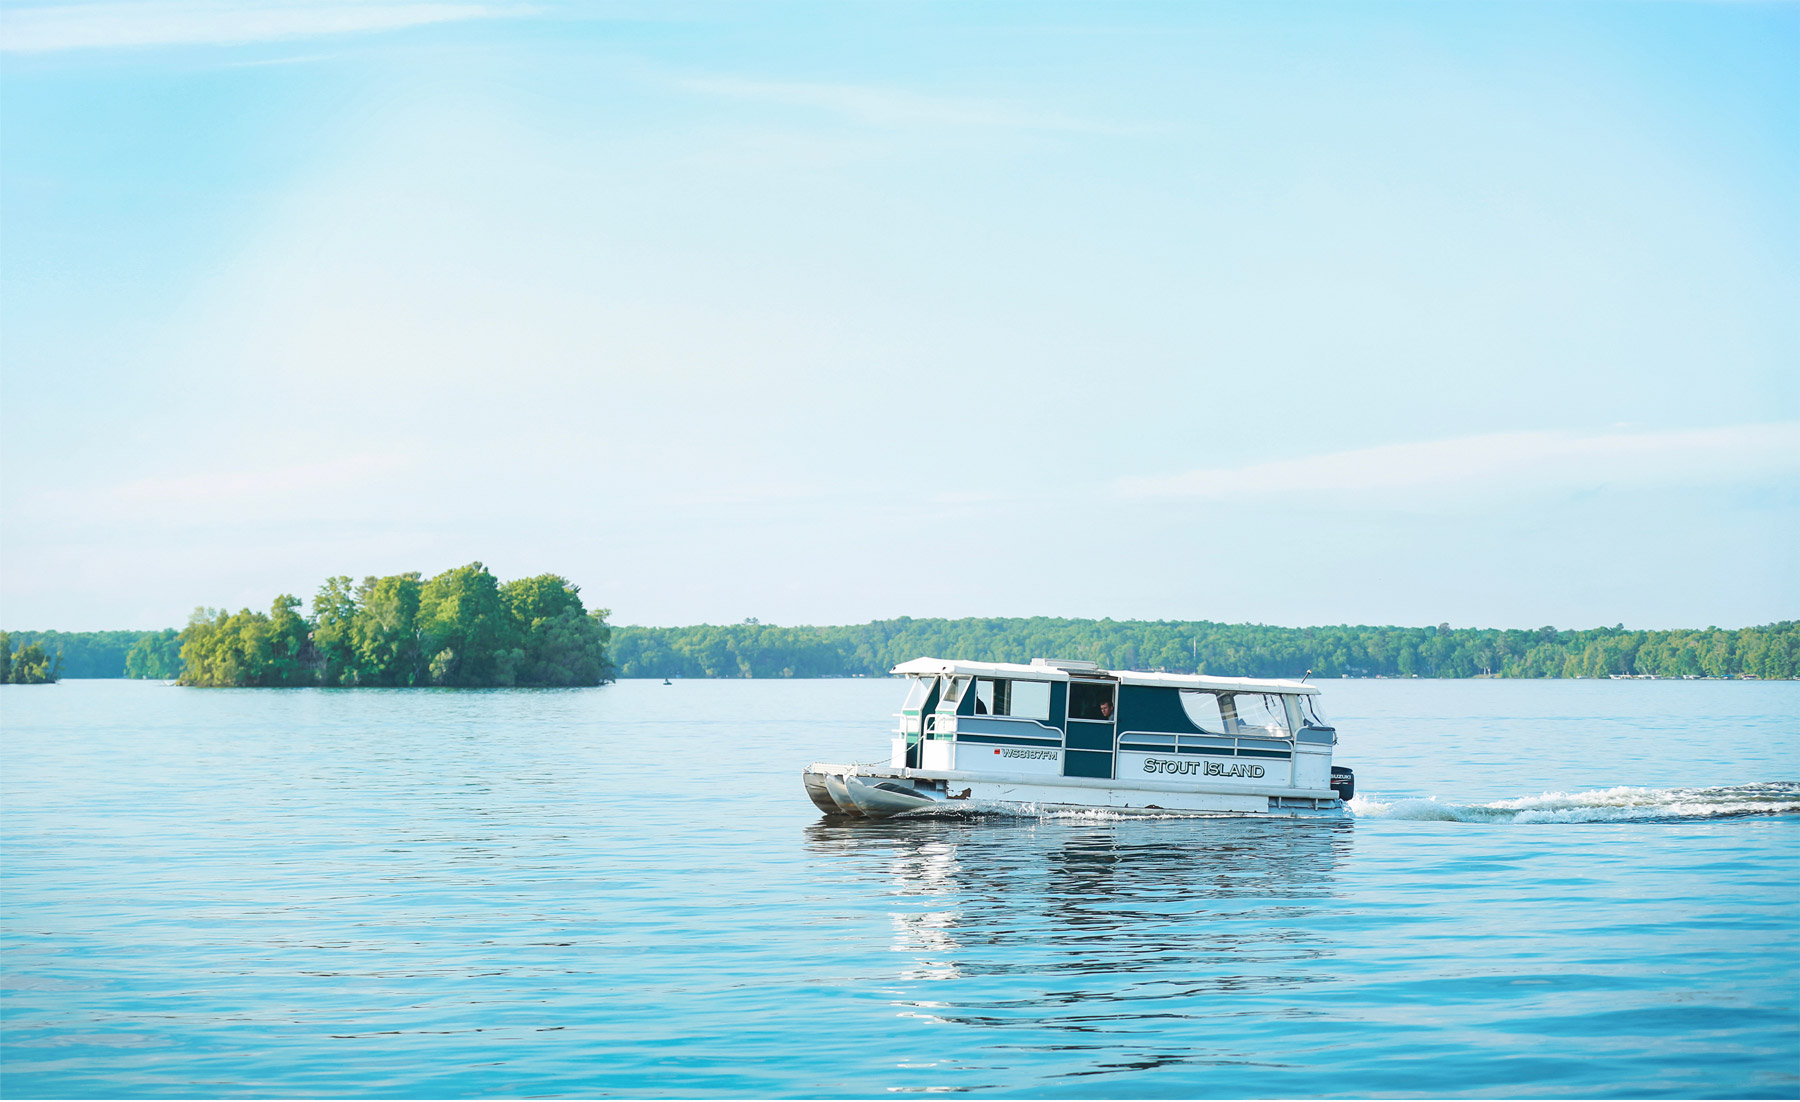 01-Vick-Photography-Wedding-Stouts-Island-Lodge-Wisconsin-Lake-Boat-Ferry-Summer-MiJa-and-Lucius.jpg